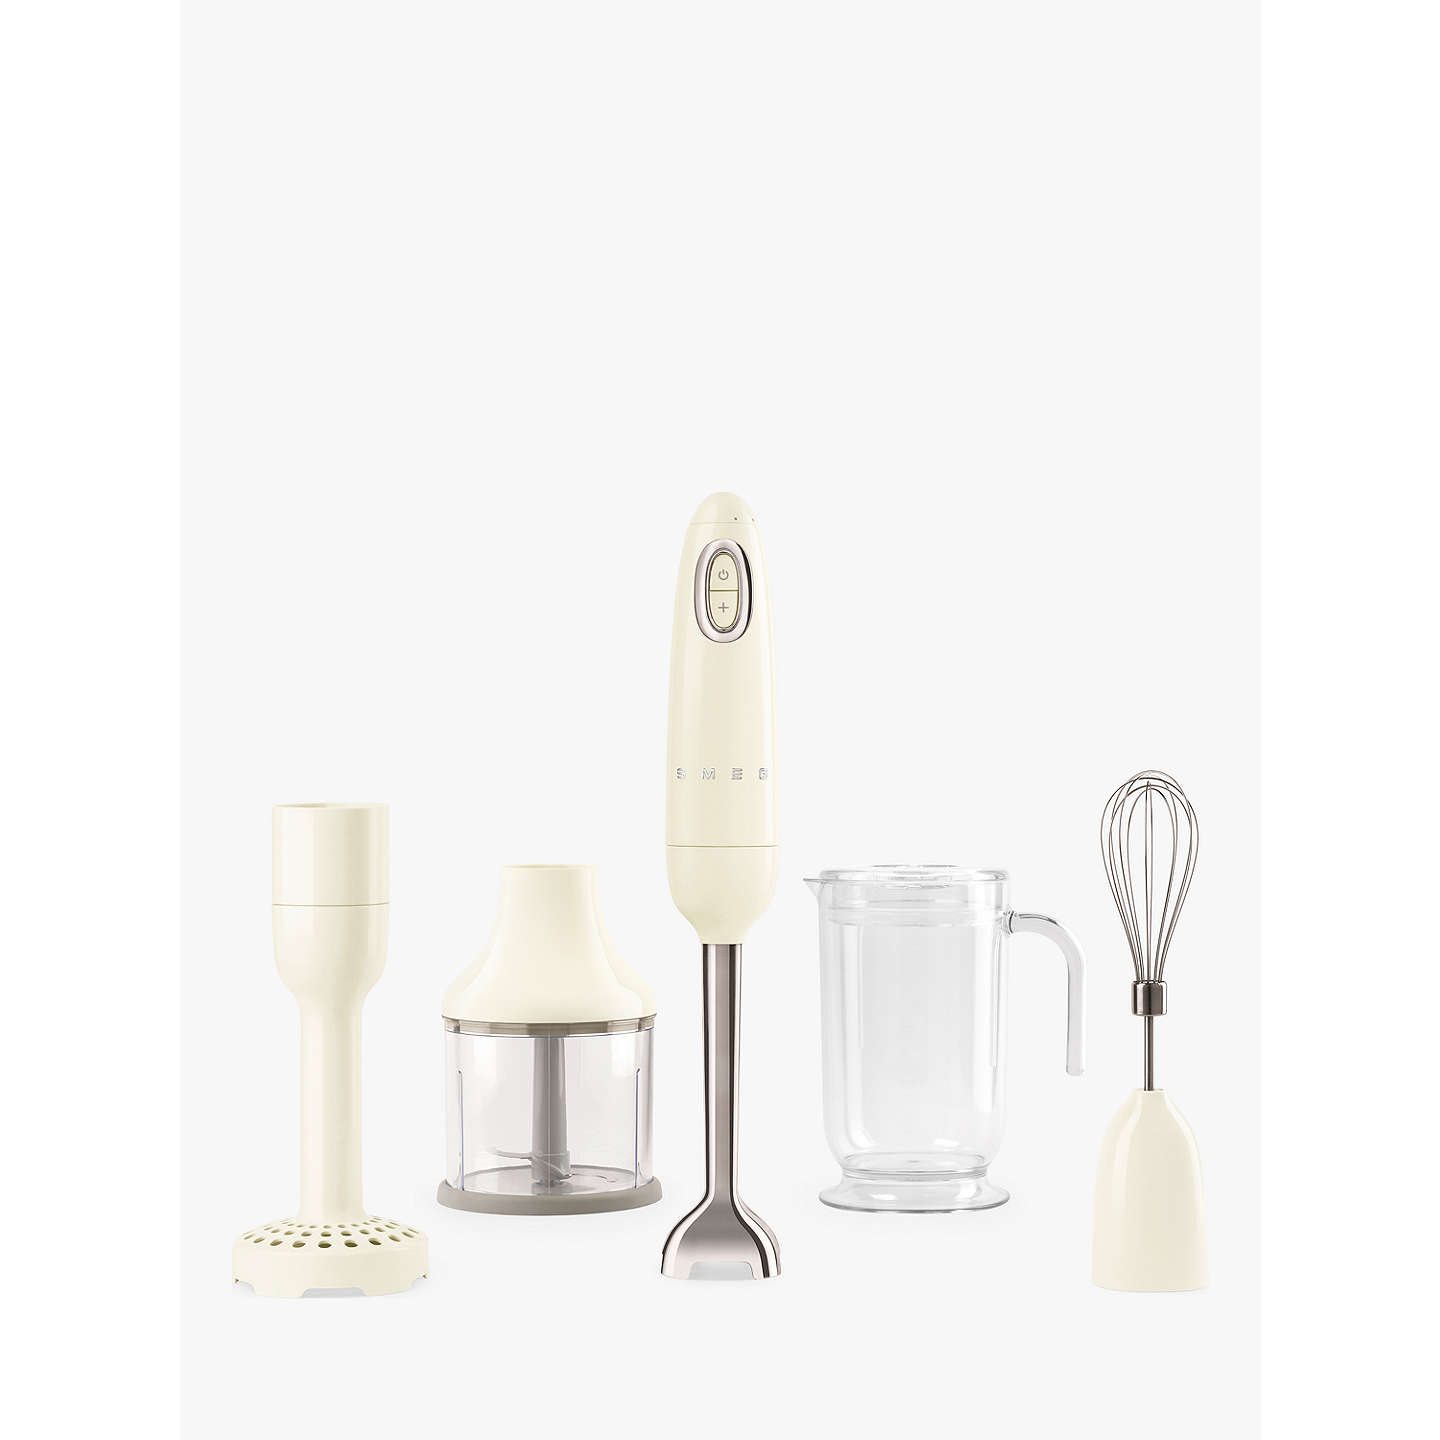 BuySmeg HBF02CRUK 50's Retro Style Hand Blender, Cream Online at johnlewis.com